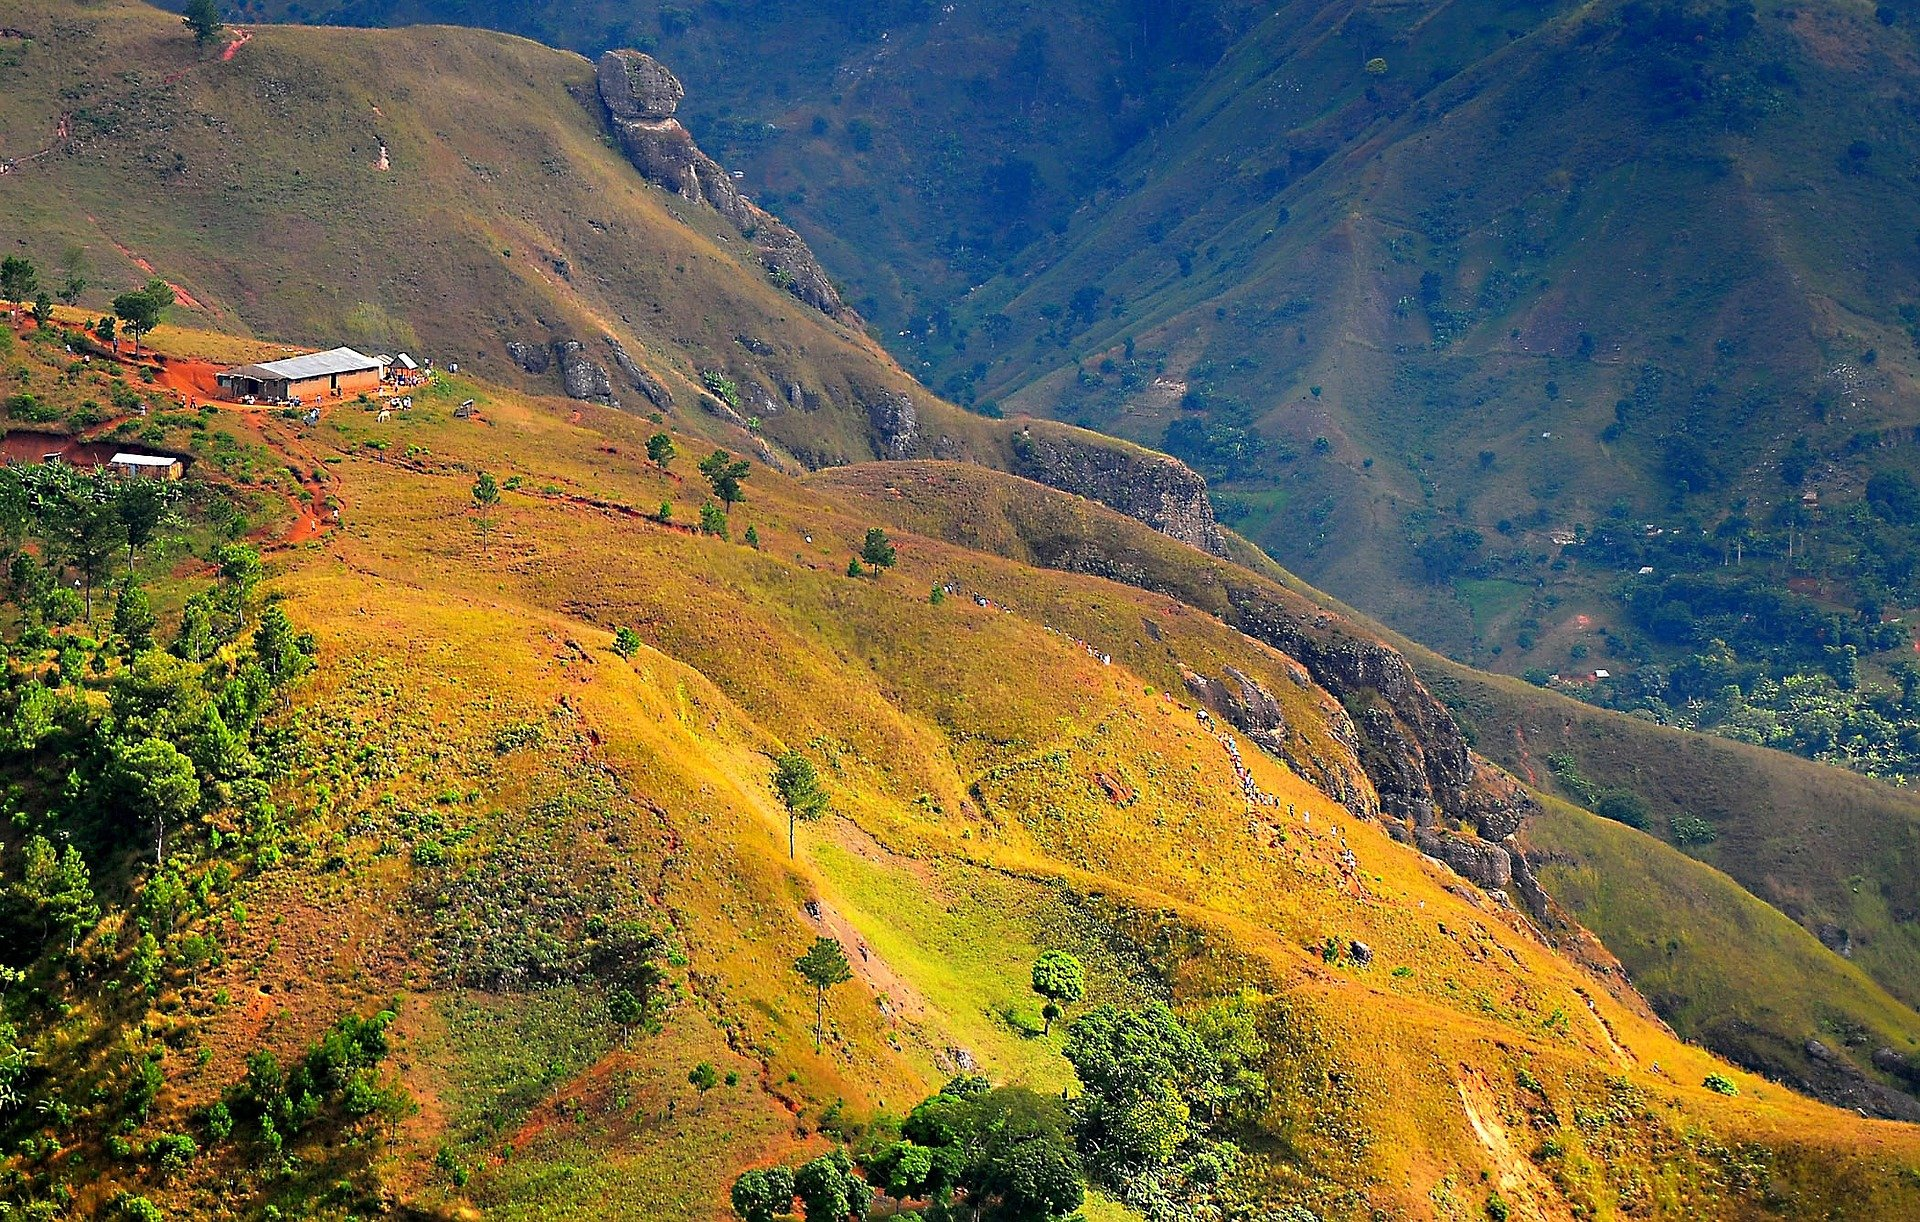 Deforested mountains cover Haiti. Photo: Phys.org